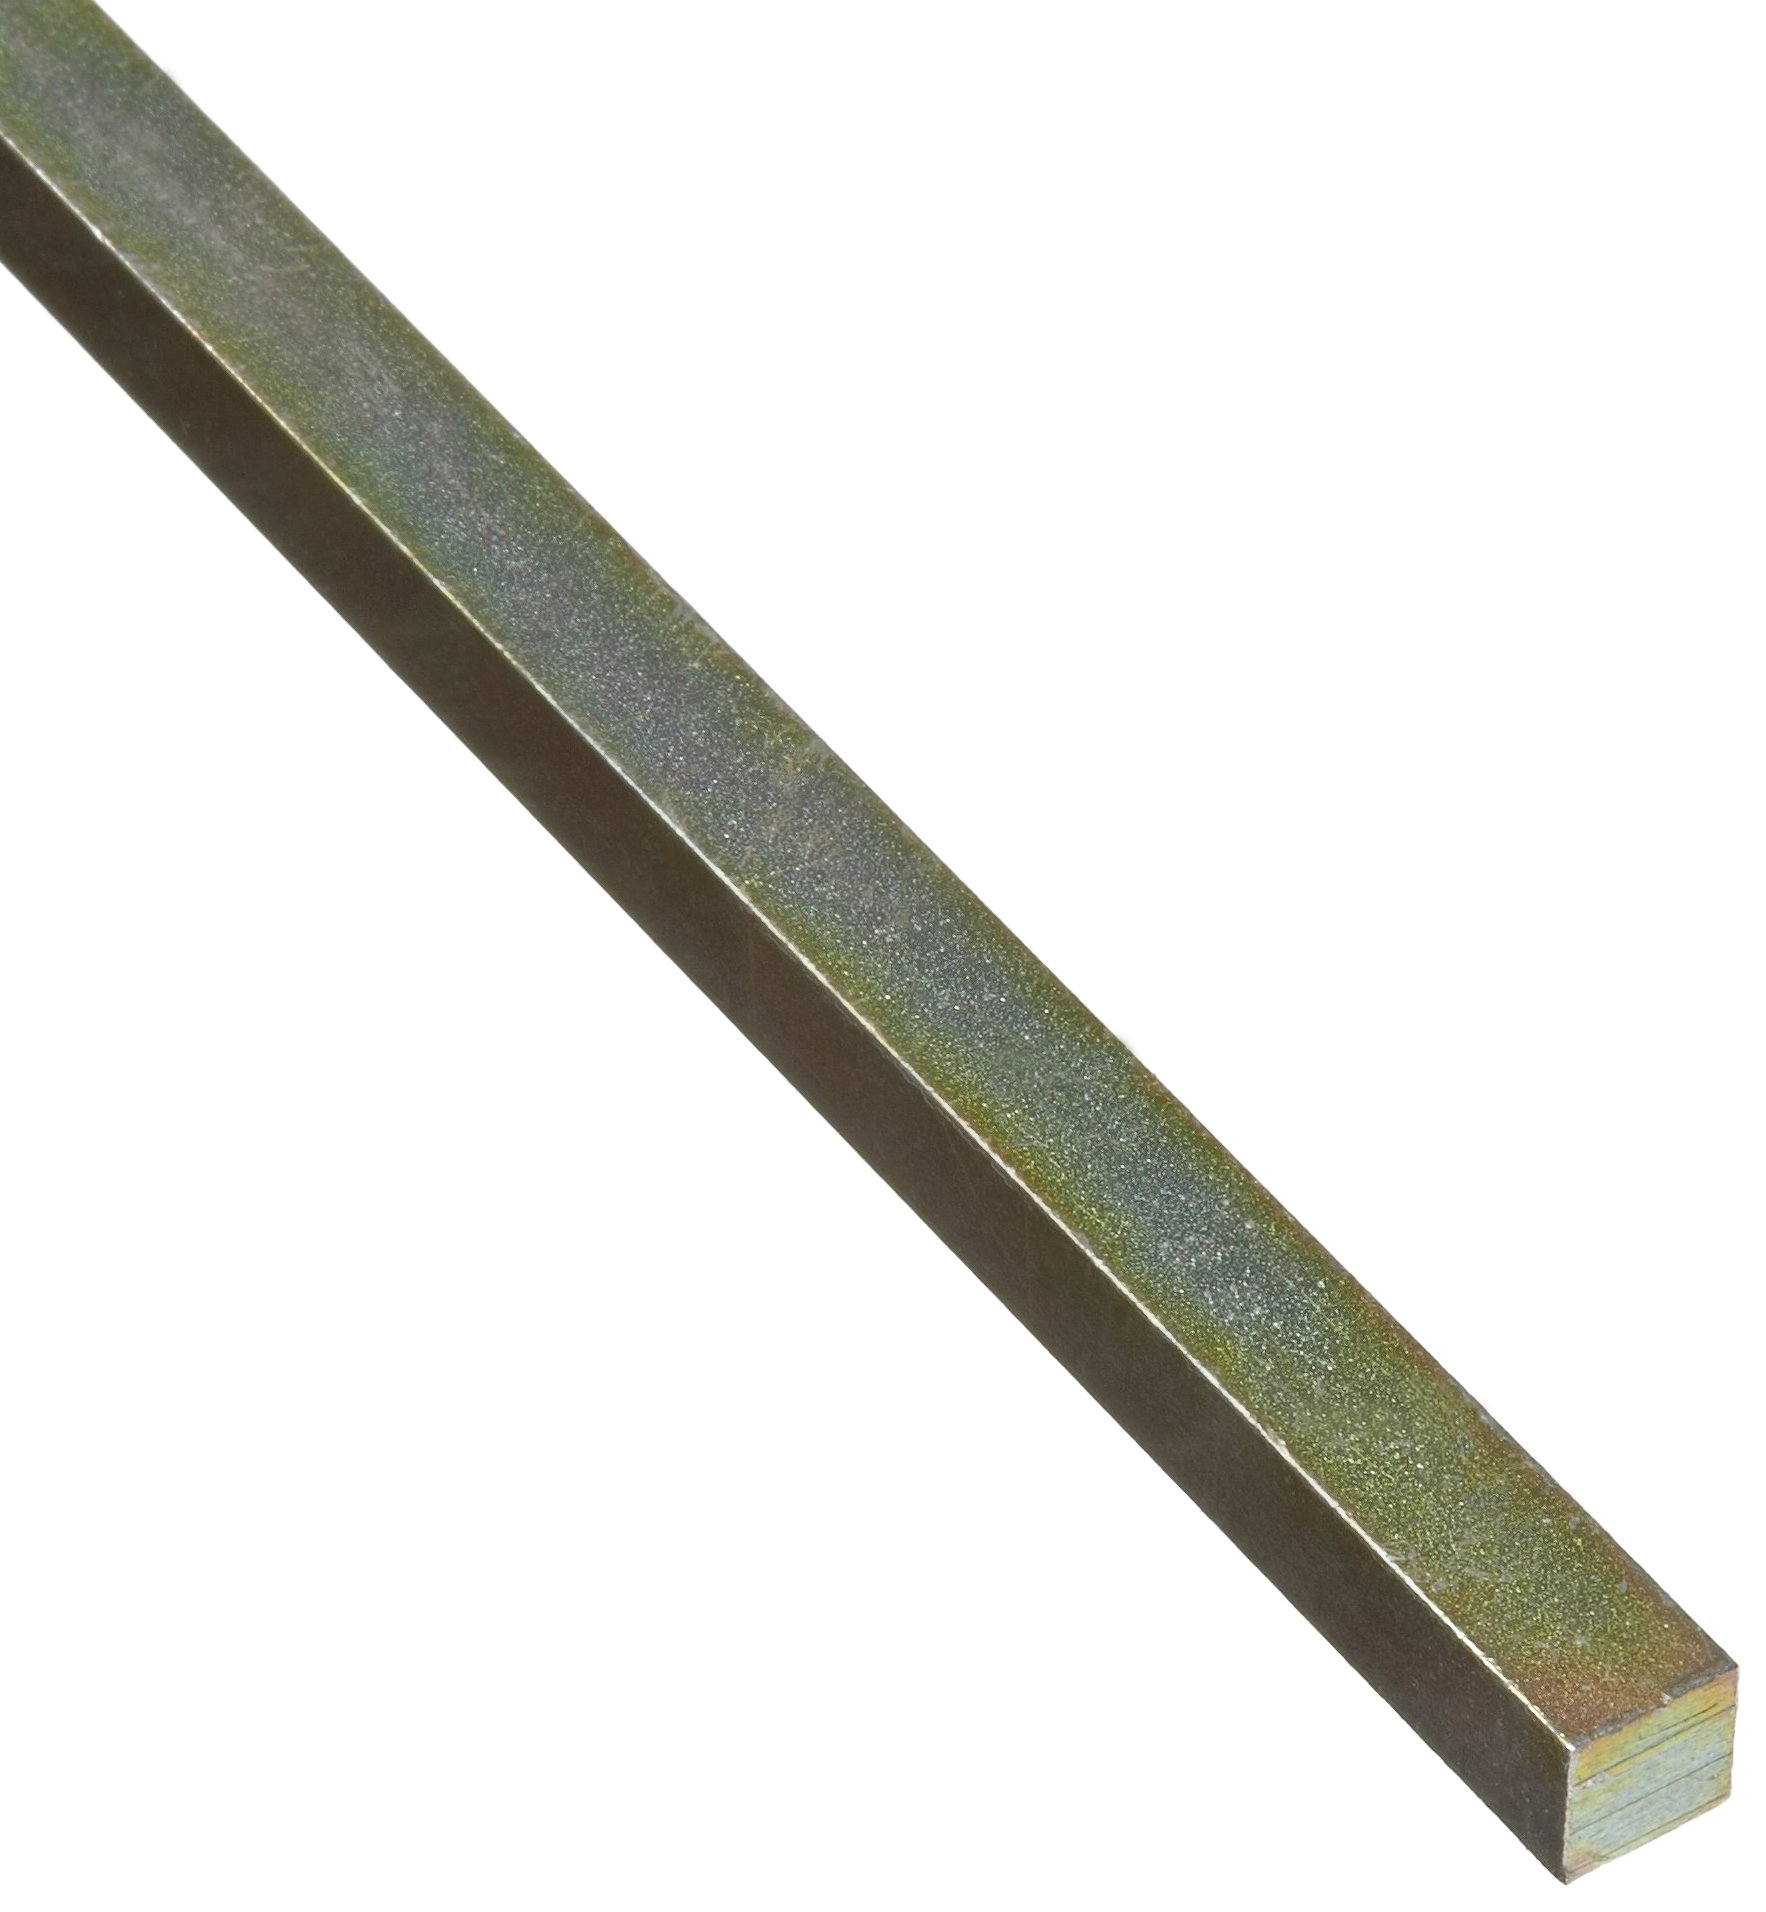 Steel Key Stock, Gold Dichromate Finish, Standard Tolerance, Metric, 5 mm Thickness, 5 mm Width, 12'' Length (Pack of 6) by Small Parts